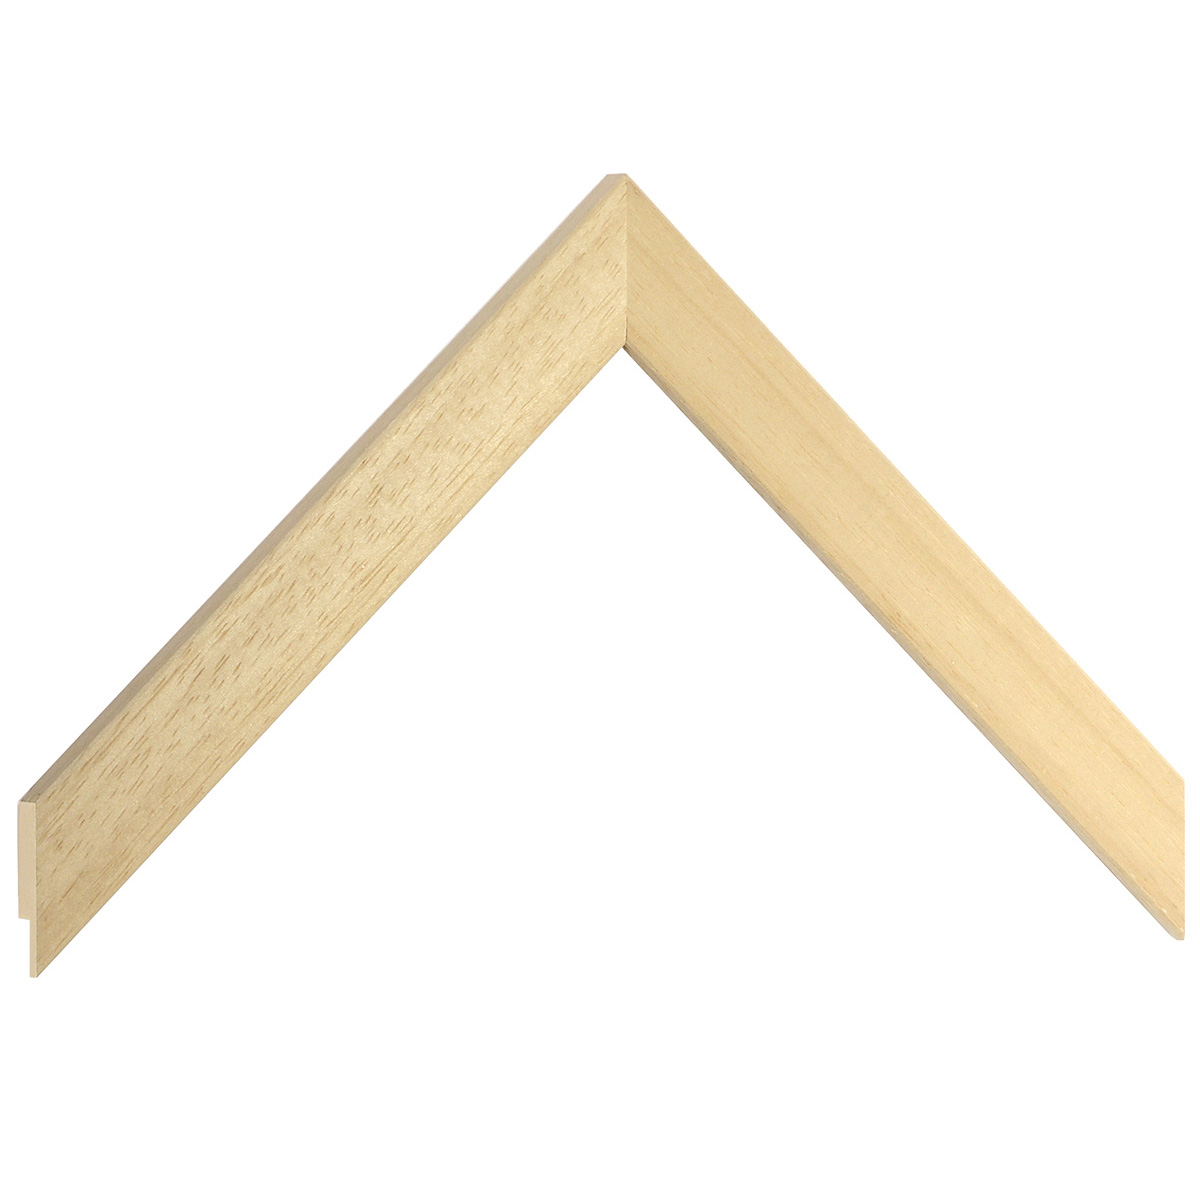 Moulding ayous, width 20mm, height 10mm, bare timber